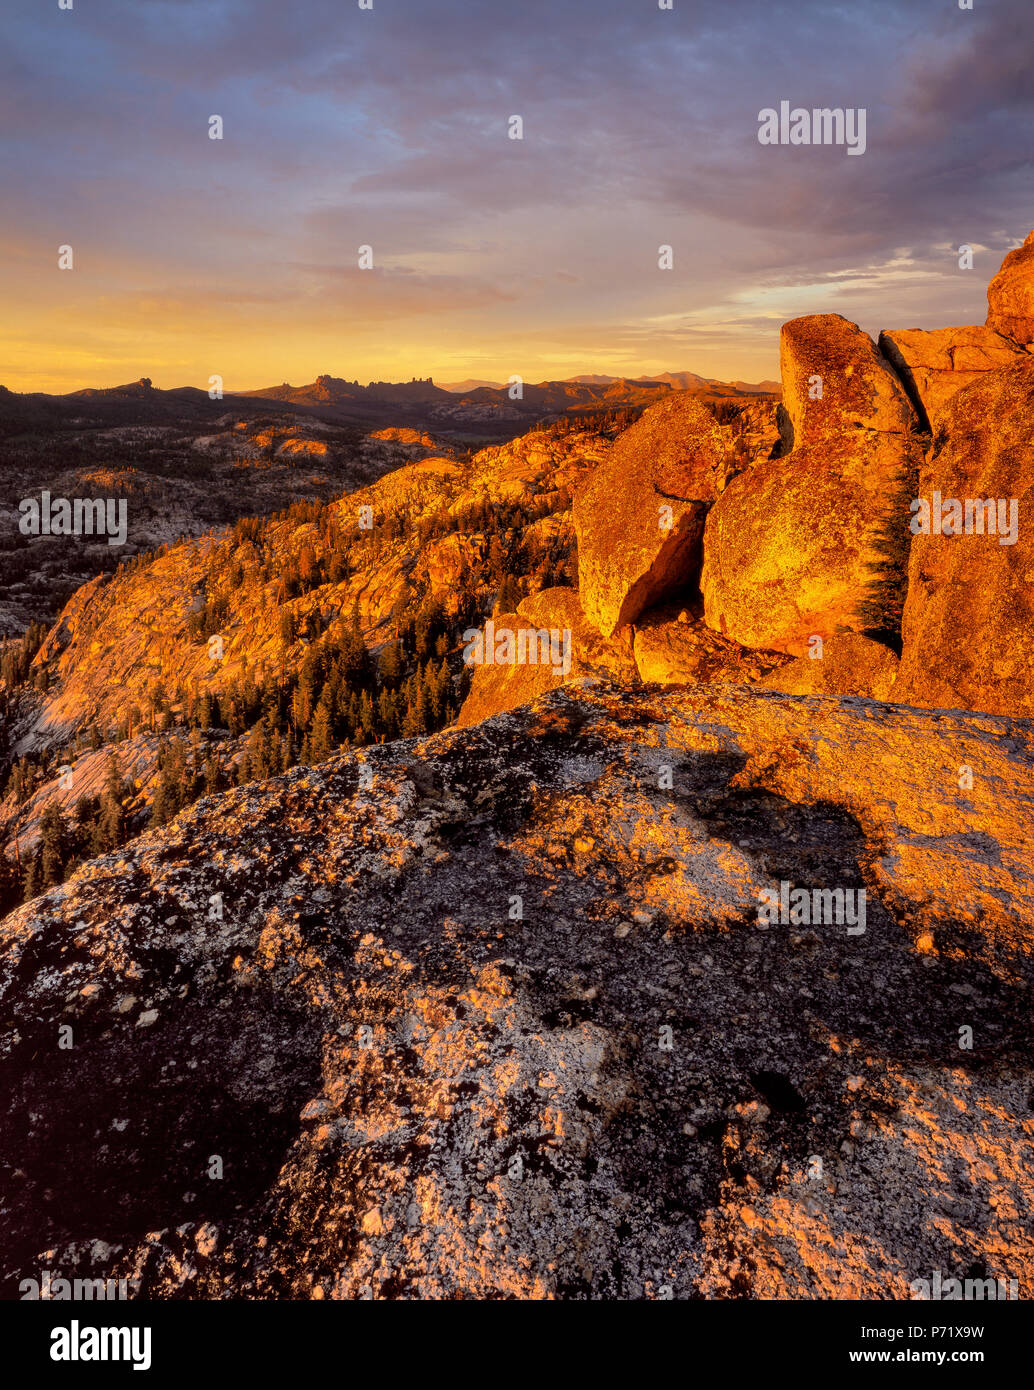 Sunset, Burst Rock Formation, Emigrant Wilderness, Stanislaus National Forest, Sierra Nevada Mountains, California - Stock Image